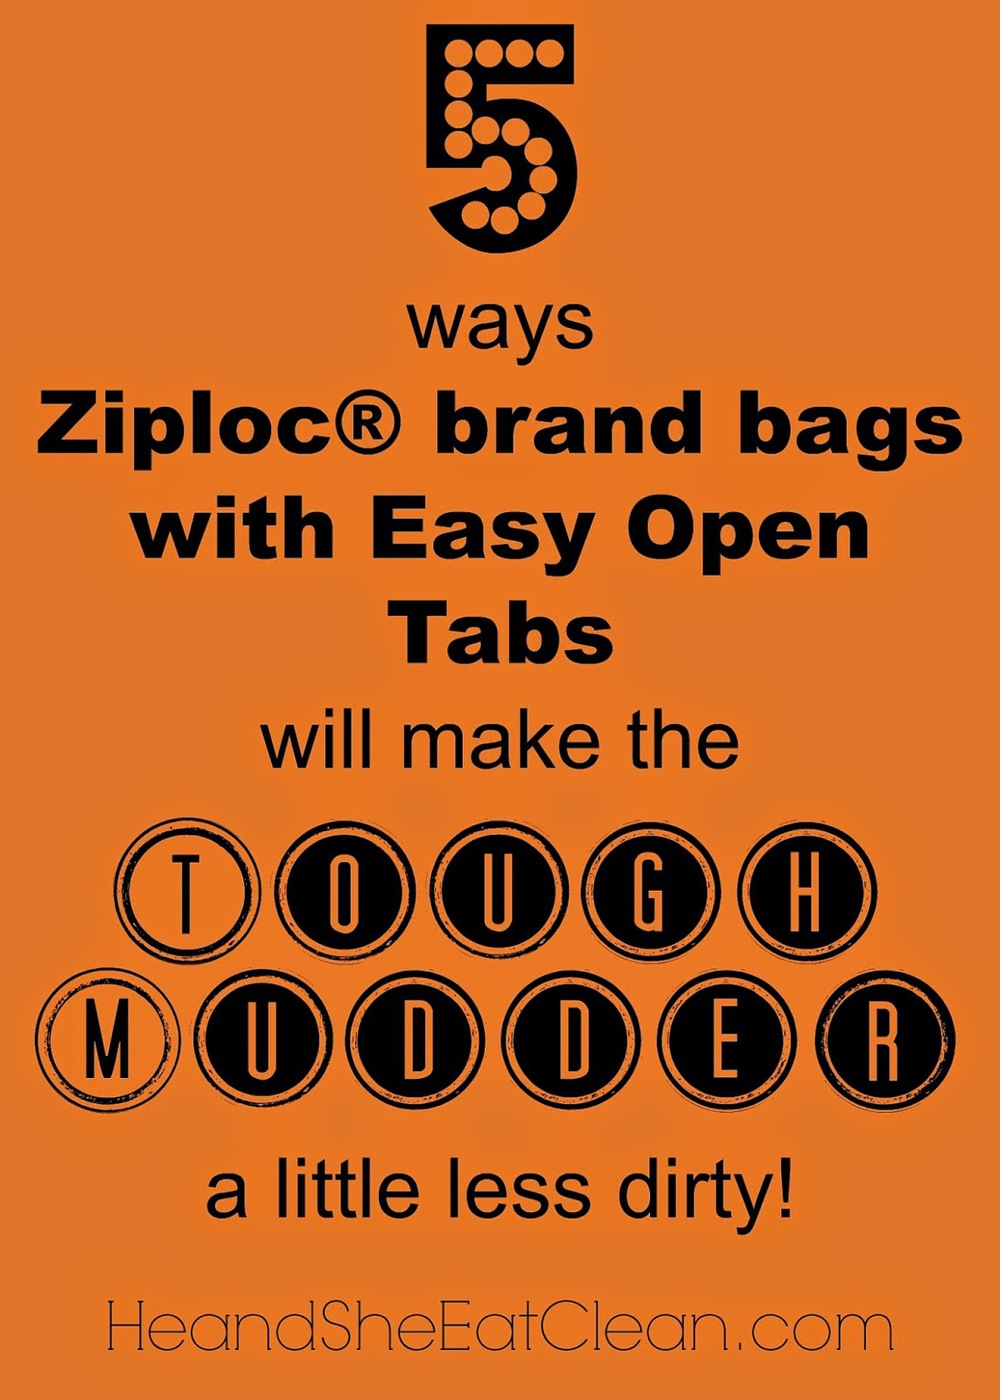 ways-to-use-ziploc-easy-open-tab-bags-for-the-tough-mudder-race-sponsored-ad-he-and-she-eat-clean-race-teamwork-tough-mother-less-dirty-brand-bags.jpg